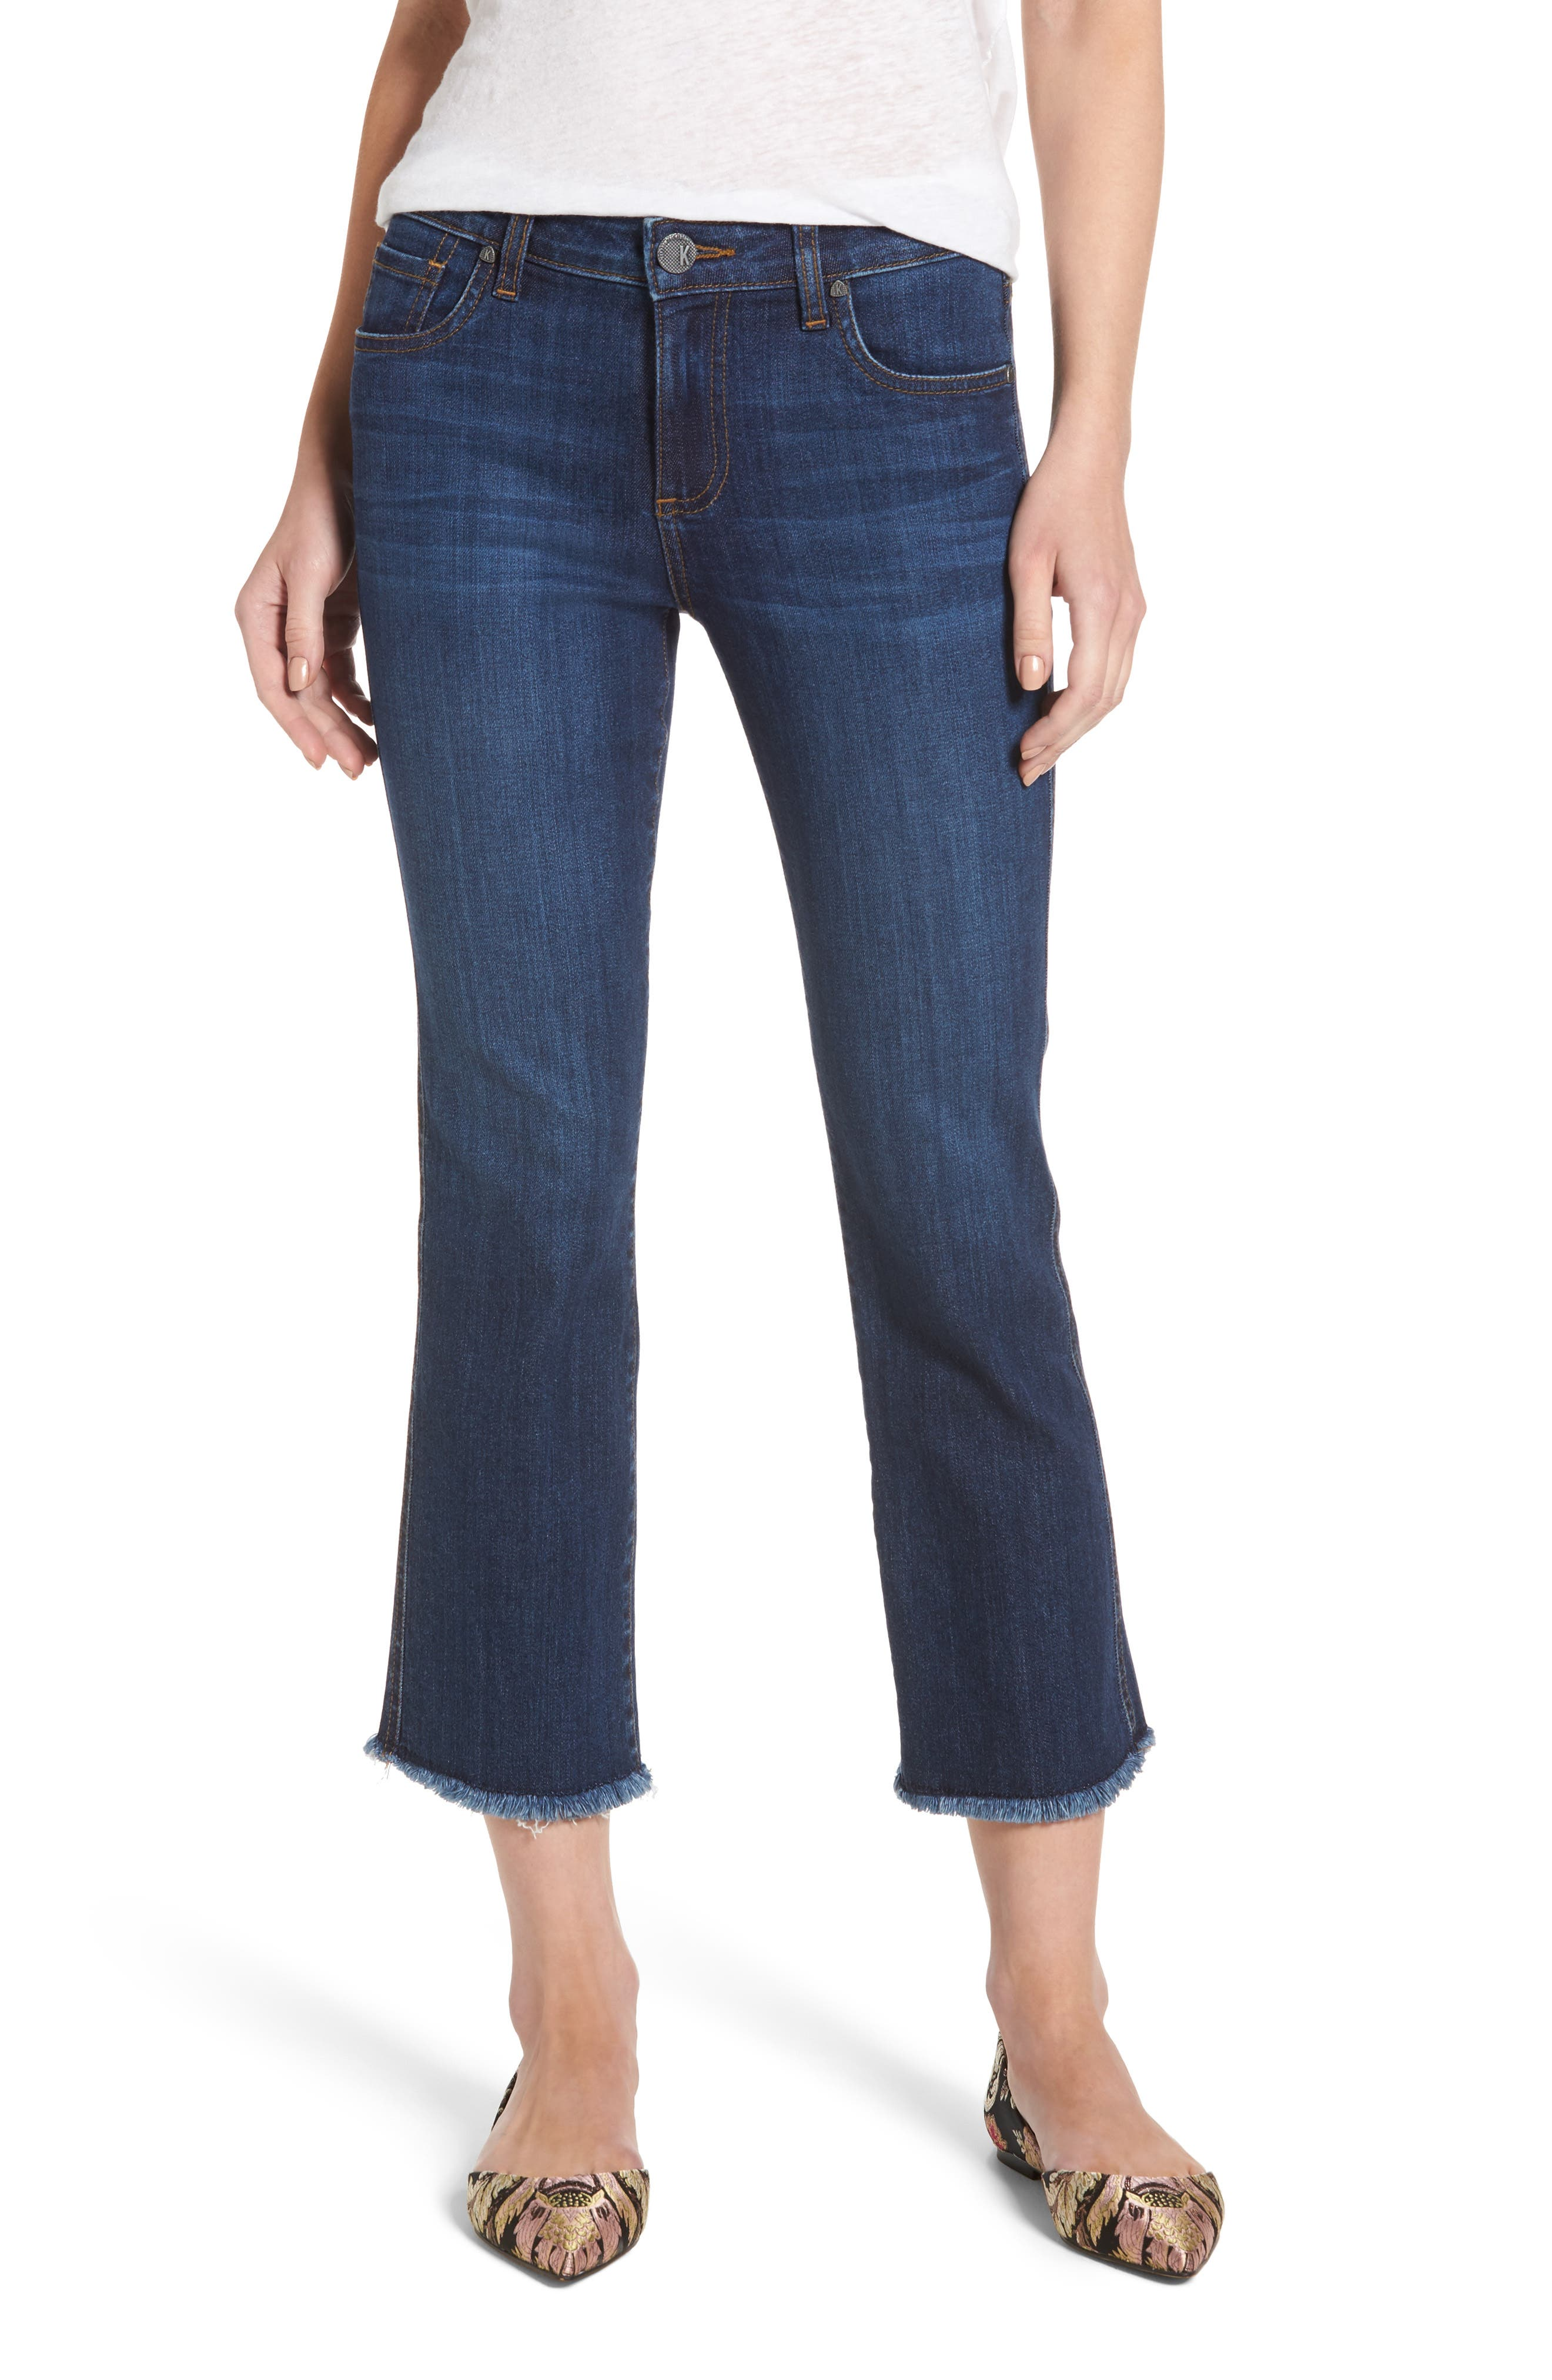 Alternate Image 1 Selected - KUT from the Kloth Reese Frayed Ankle Jeans (Regular & Petite) (Upheld)